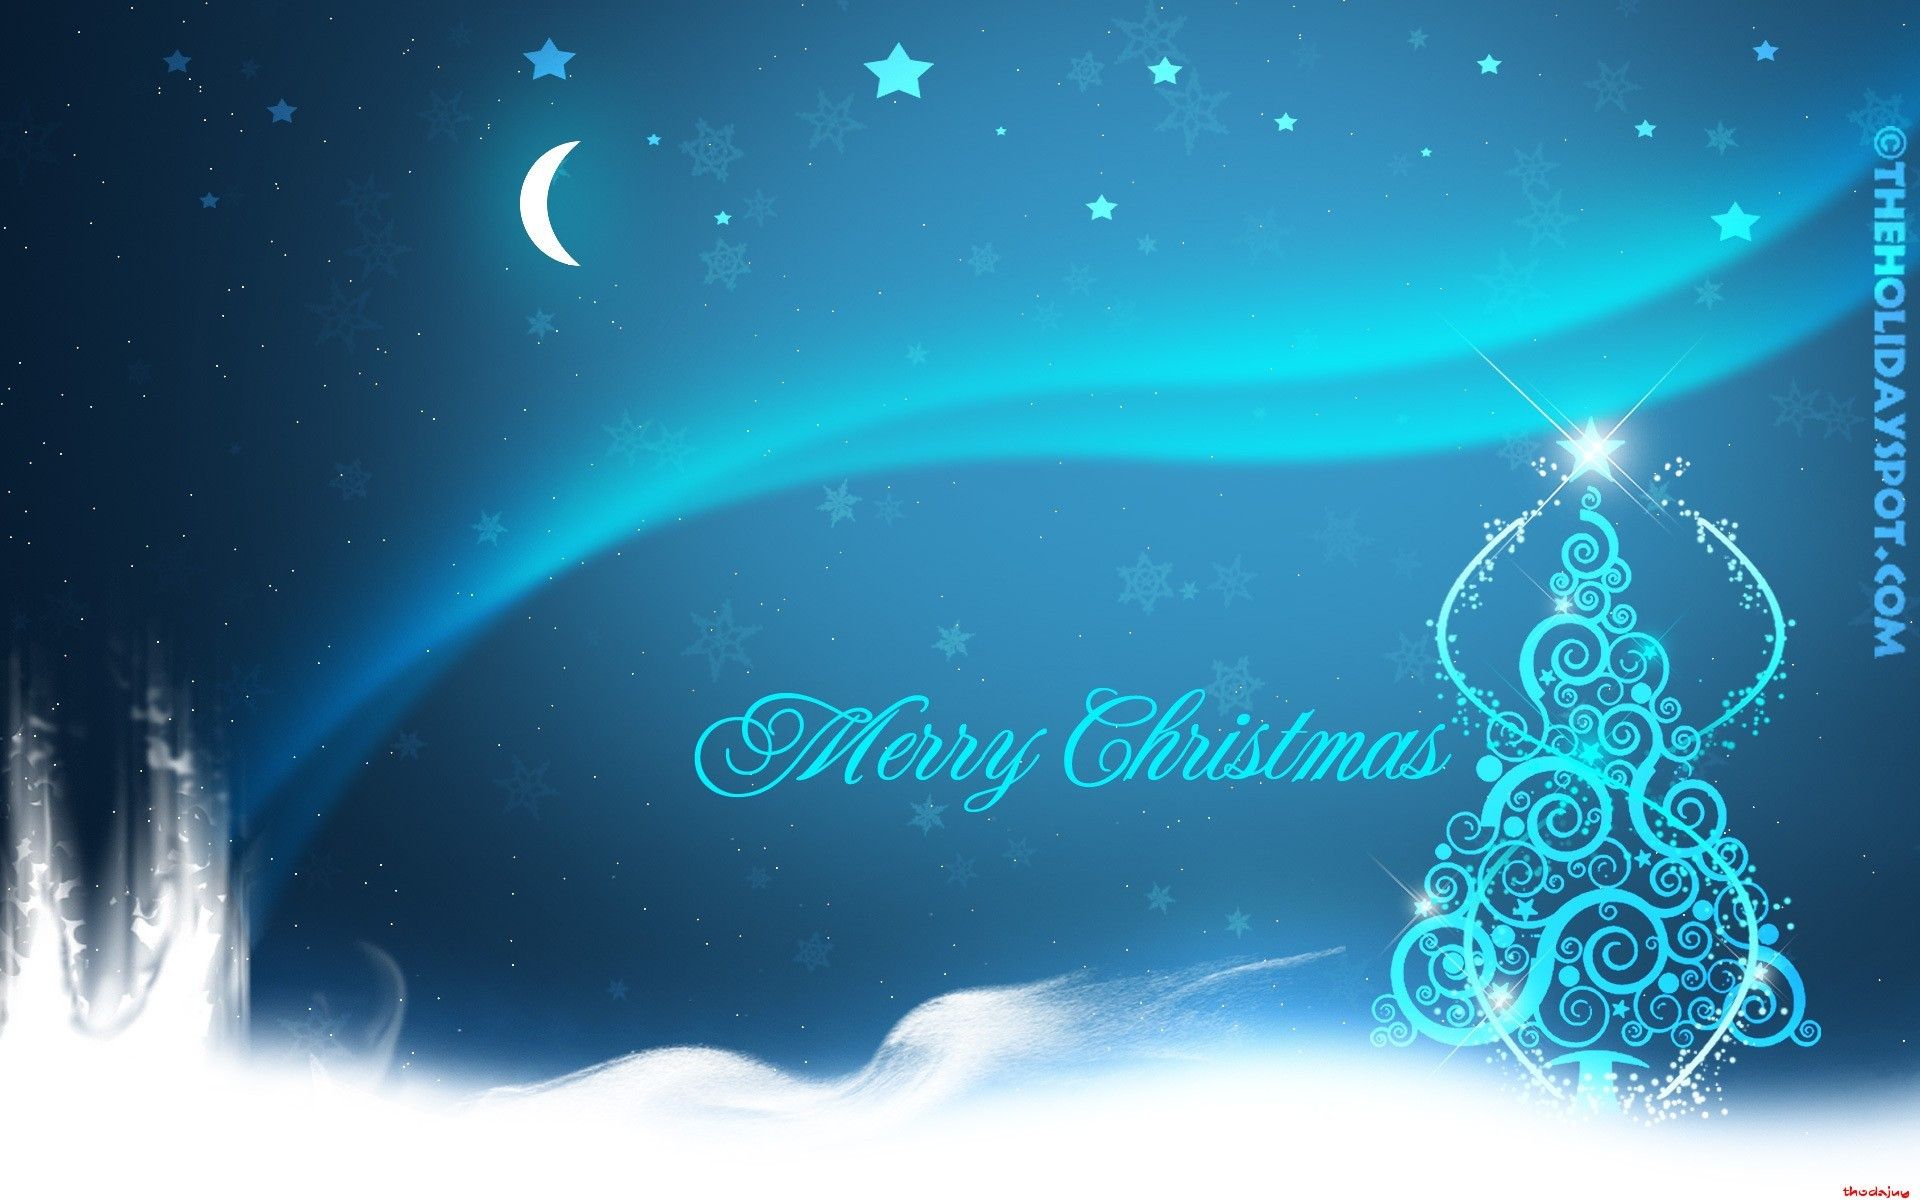 merry christmas wallpaper 15